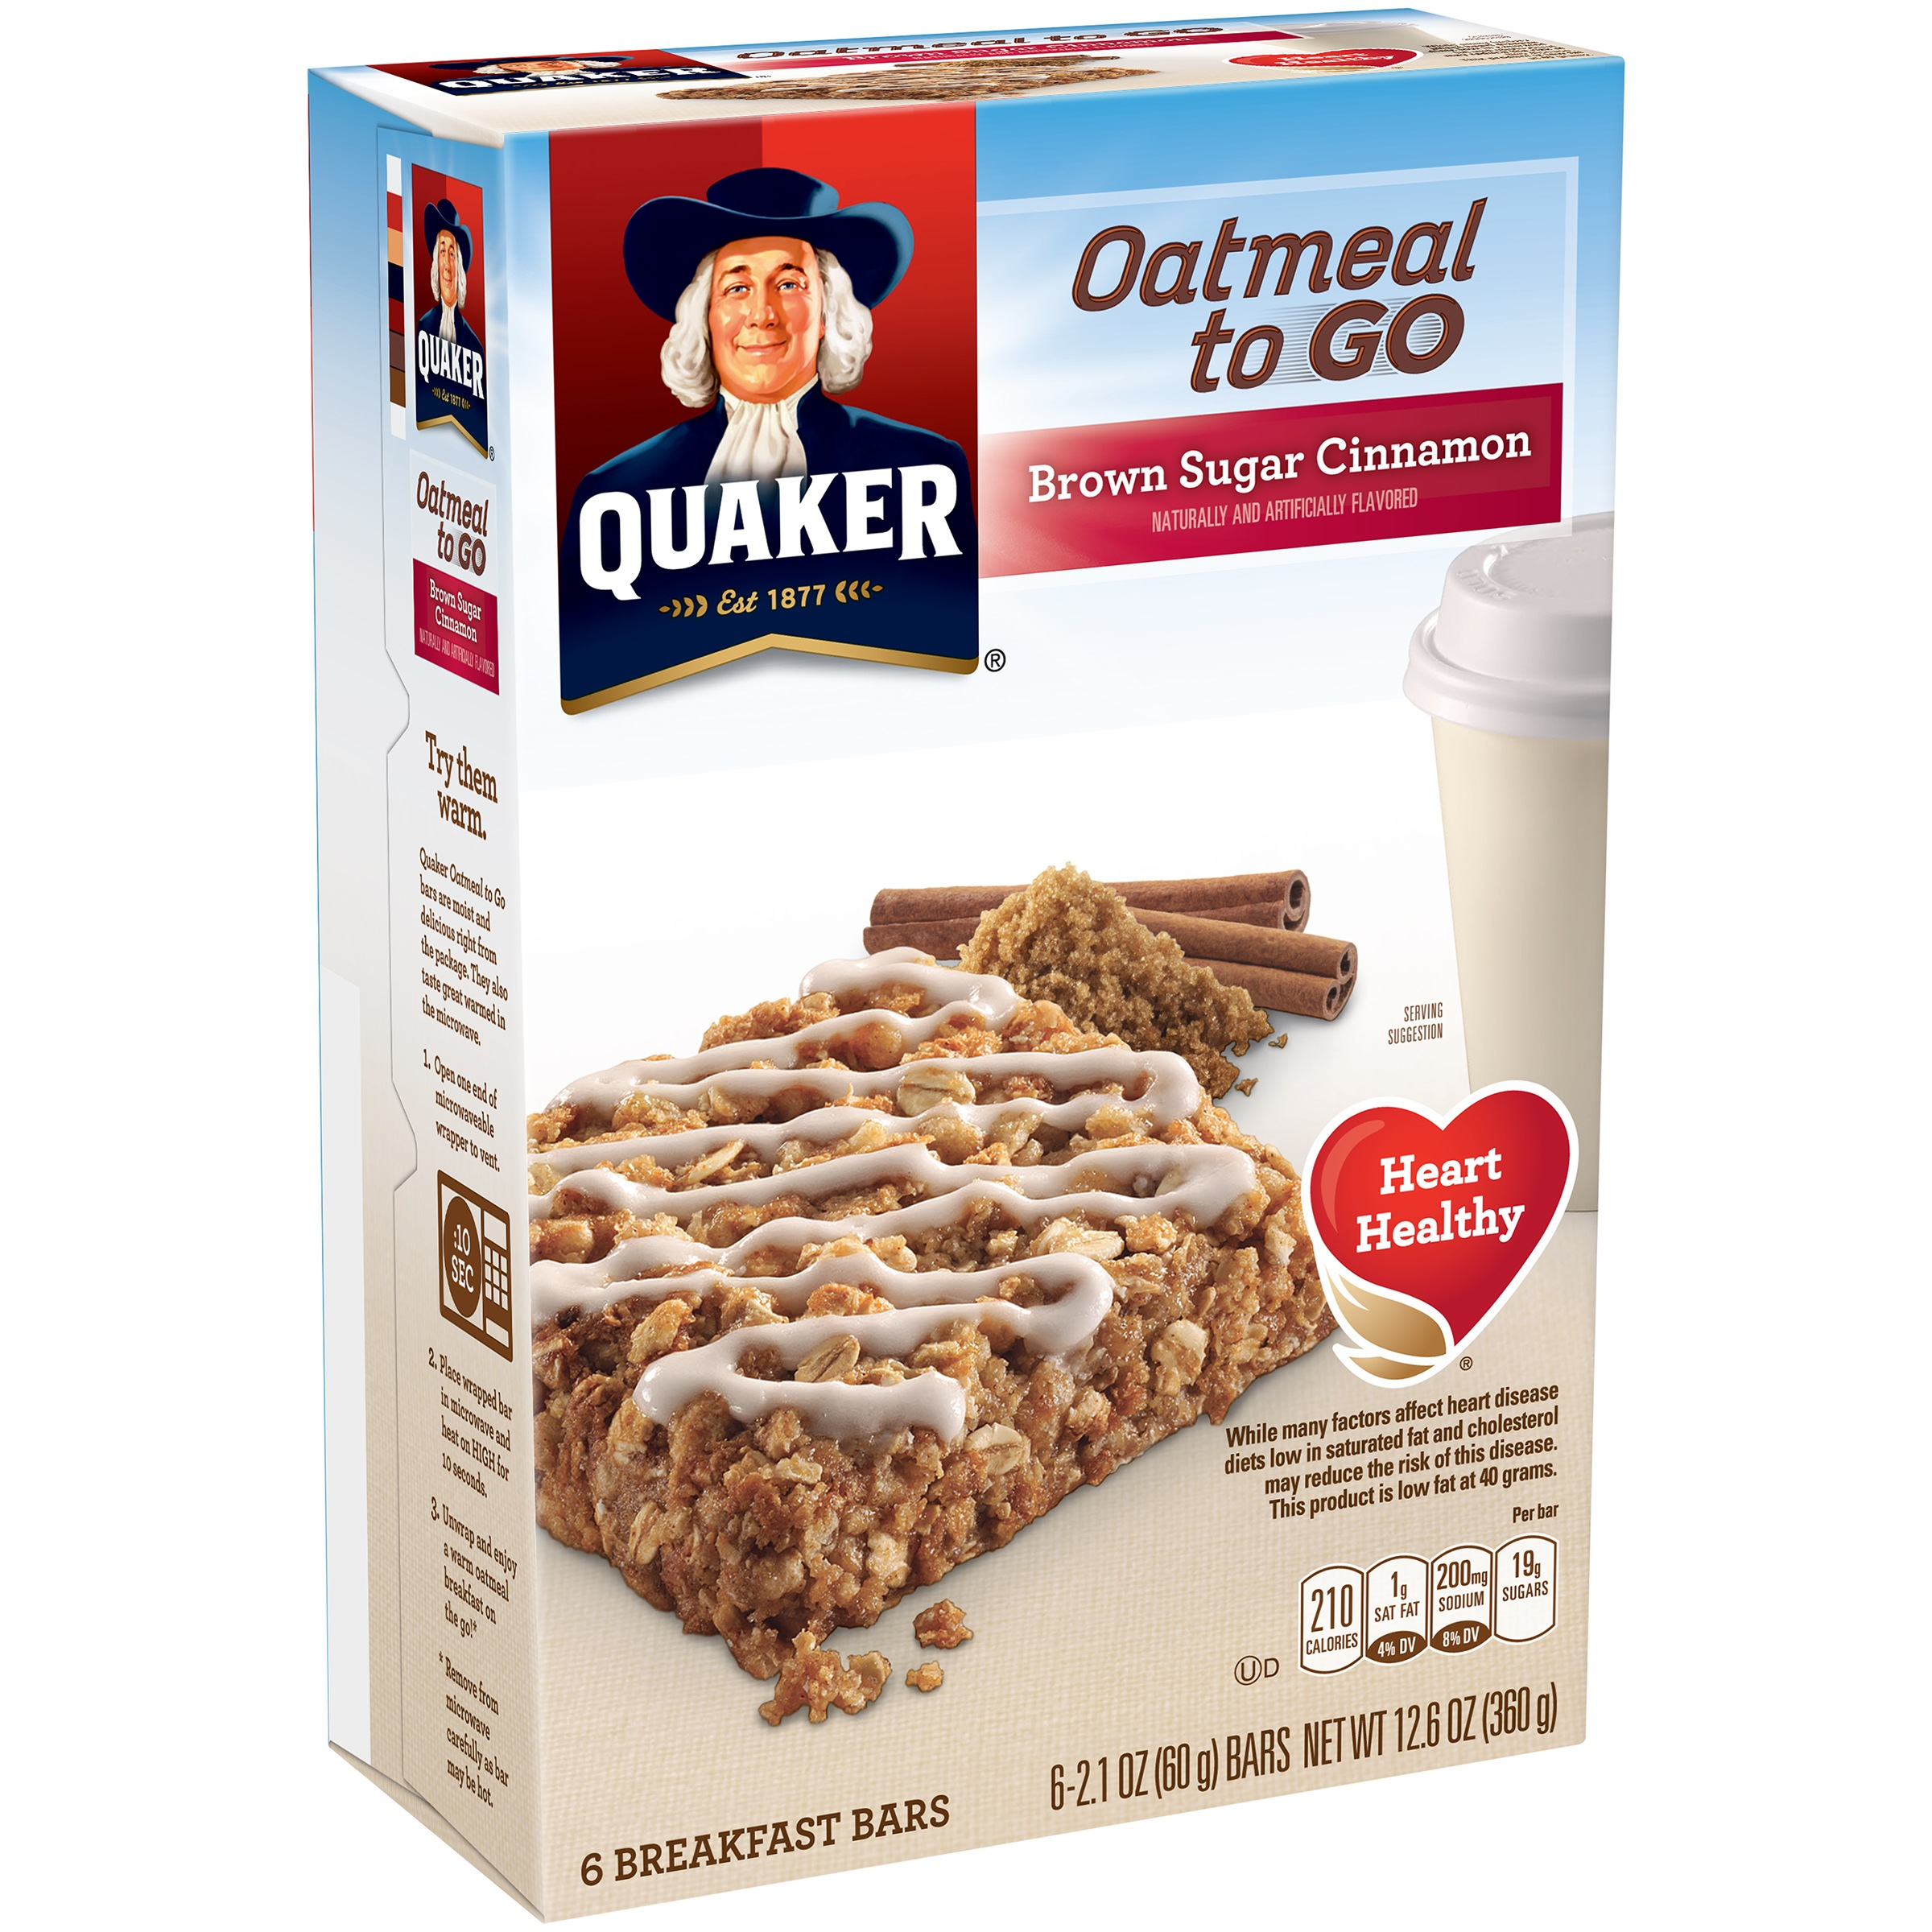 Quaker Oatmeal to Go Brown Sugar Cinnamon Breakfast Bars 6-2.1 oz. Bars